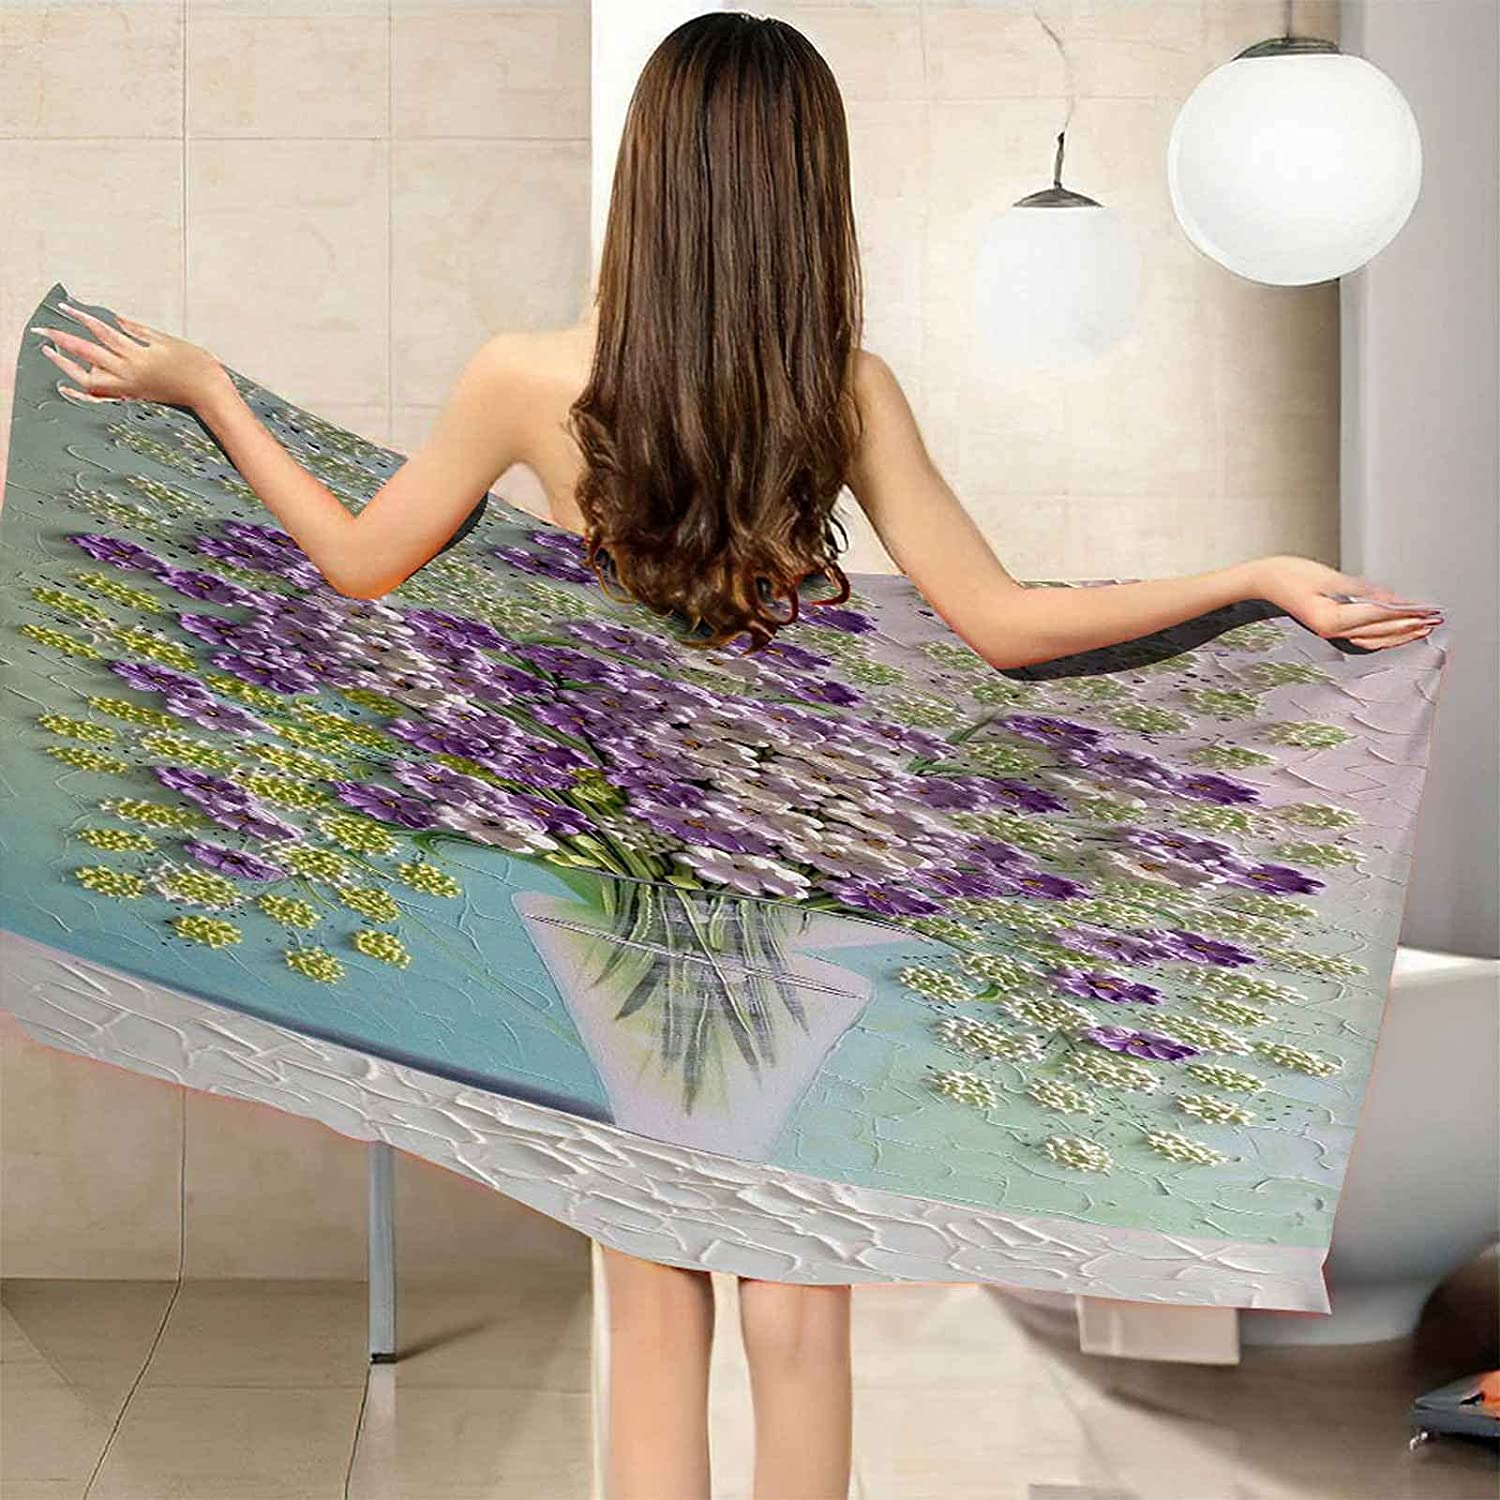 QFMMQI Beach Towels Oversized Adults Max 48% OFF Inventory cleanup selling sale T Free Dry Sand Quick